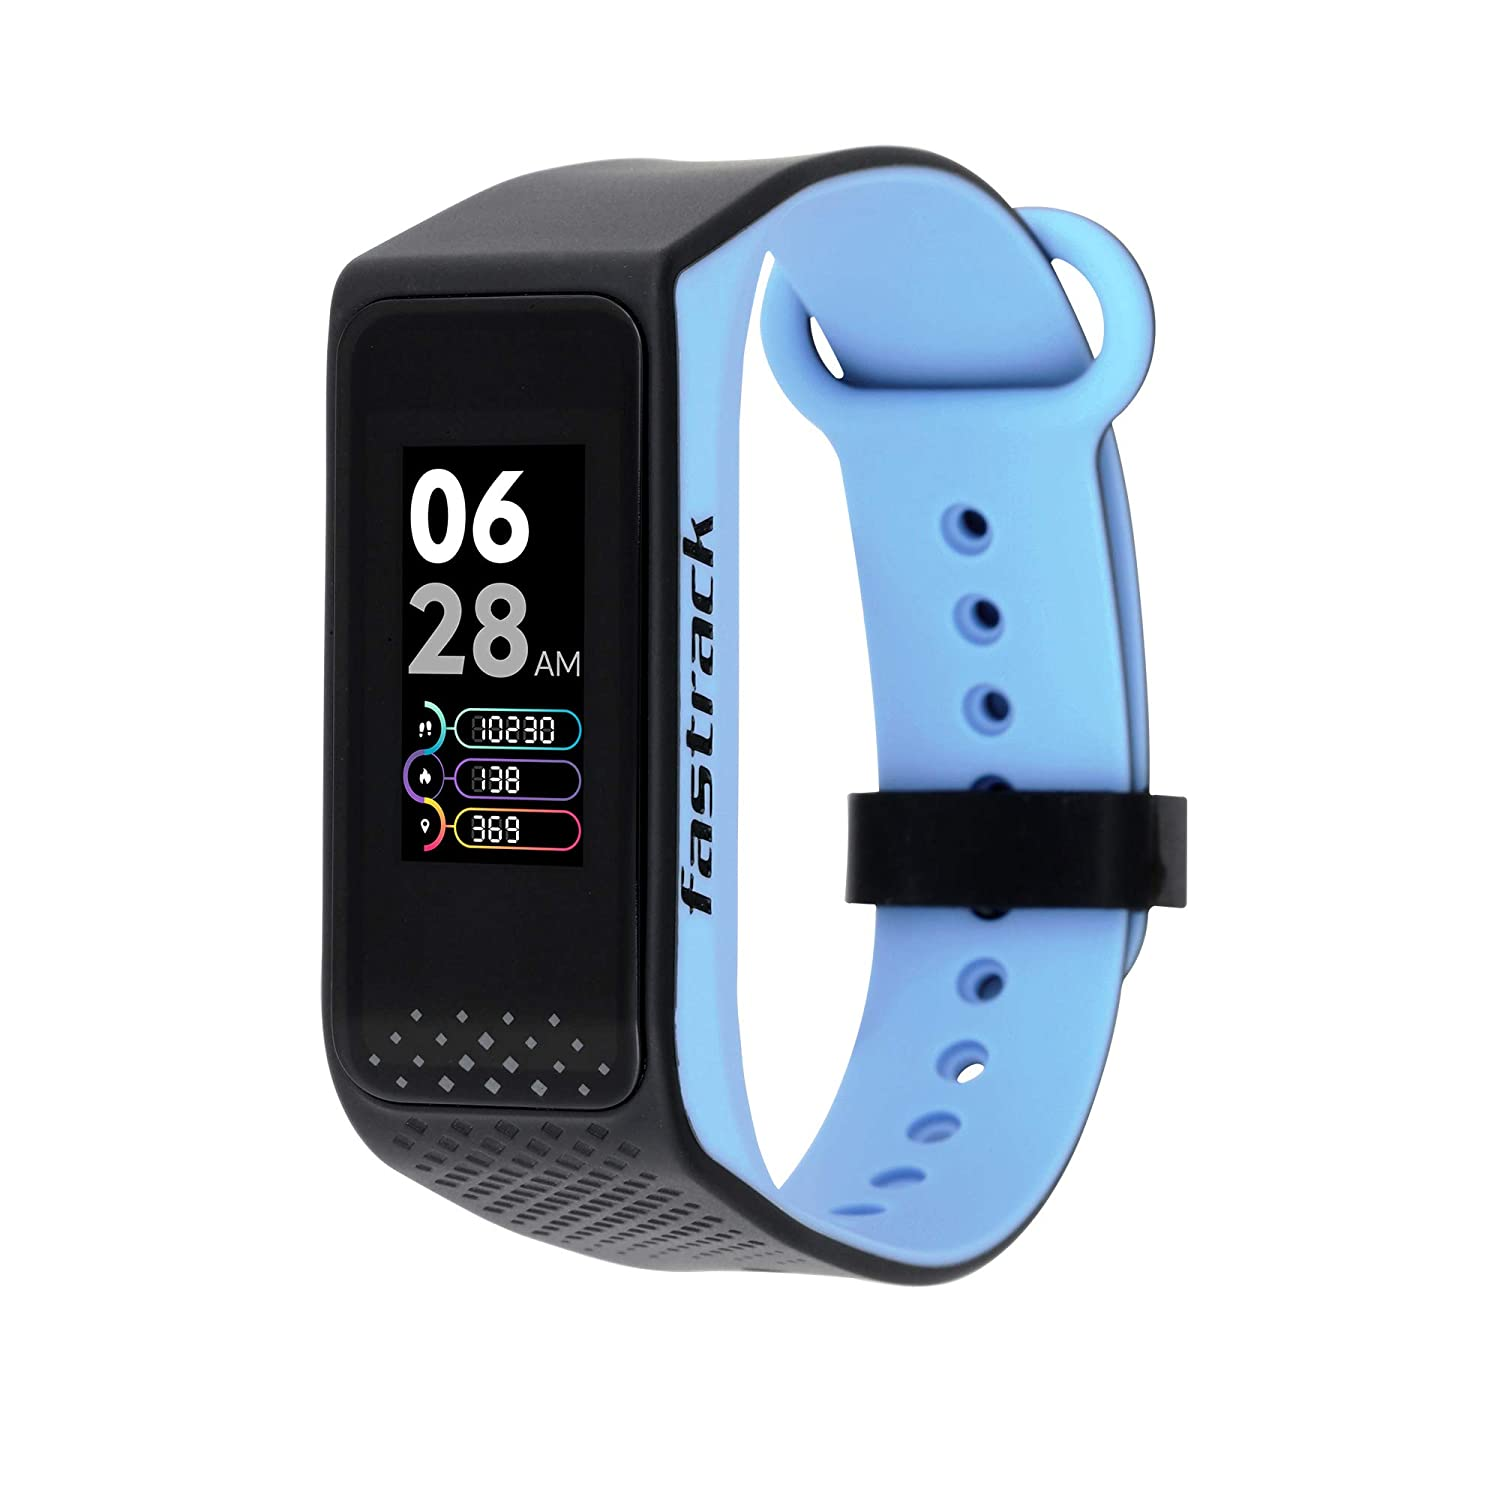 Fastrack reflex 3.0 Unisex activity tracker - Full touch, color display, Heart rate monitor, Dual- tone silicone strap and up...